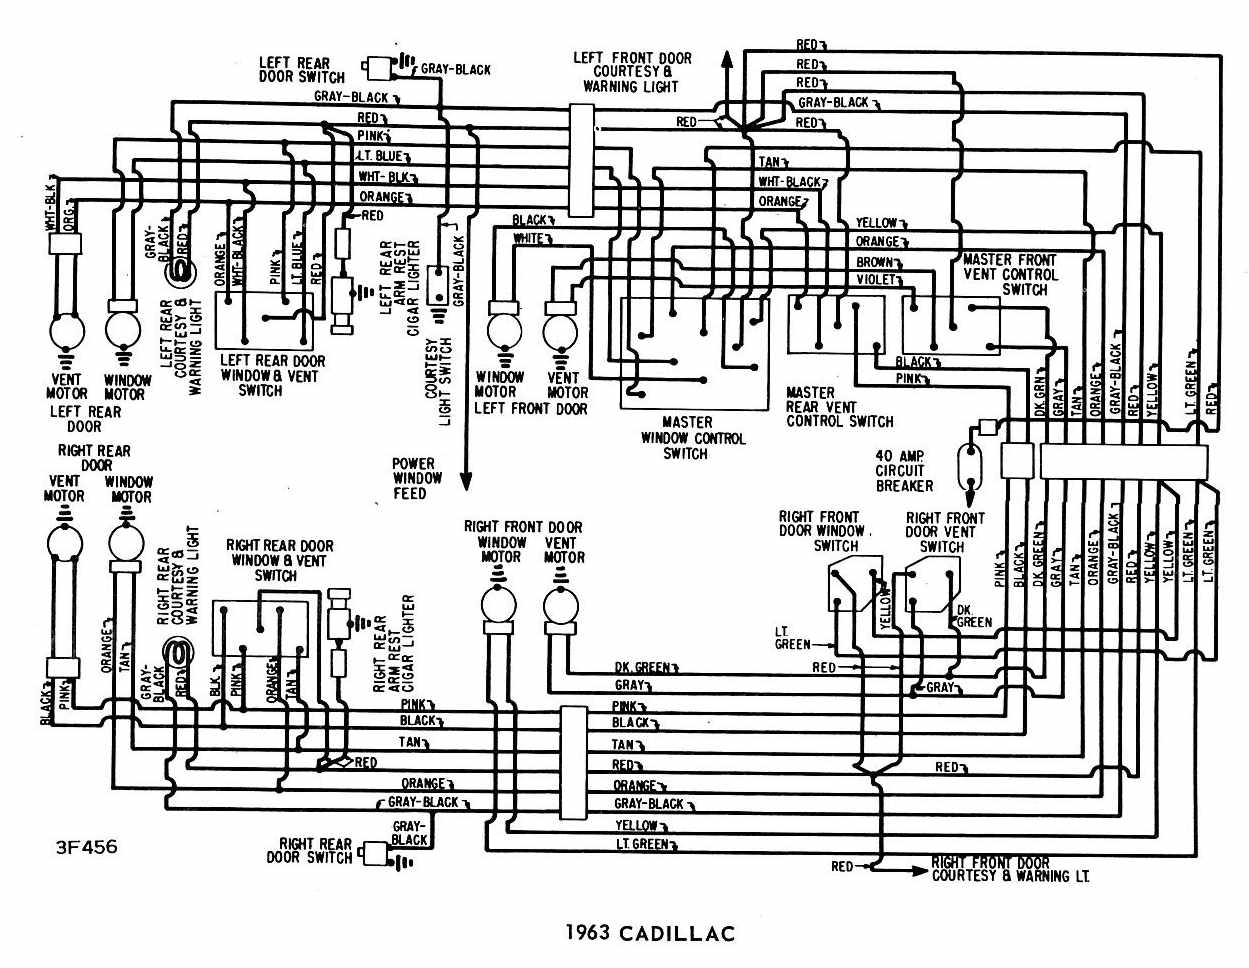 1966 Falcon Wiring Diagram Library 66 Ford Cadillac 1963 Windows